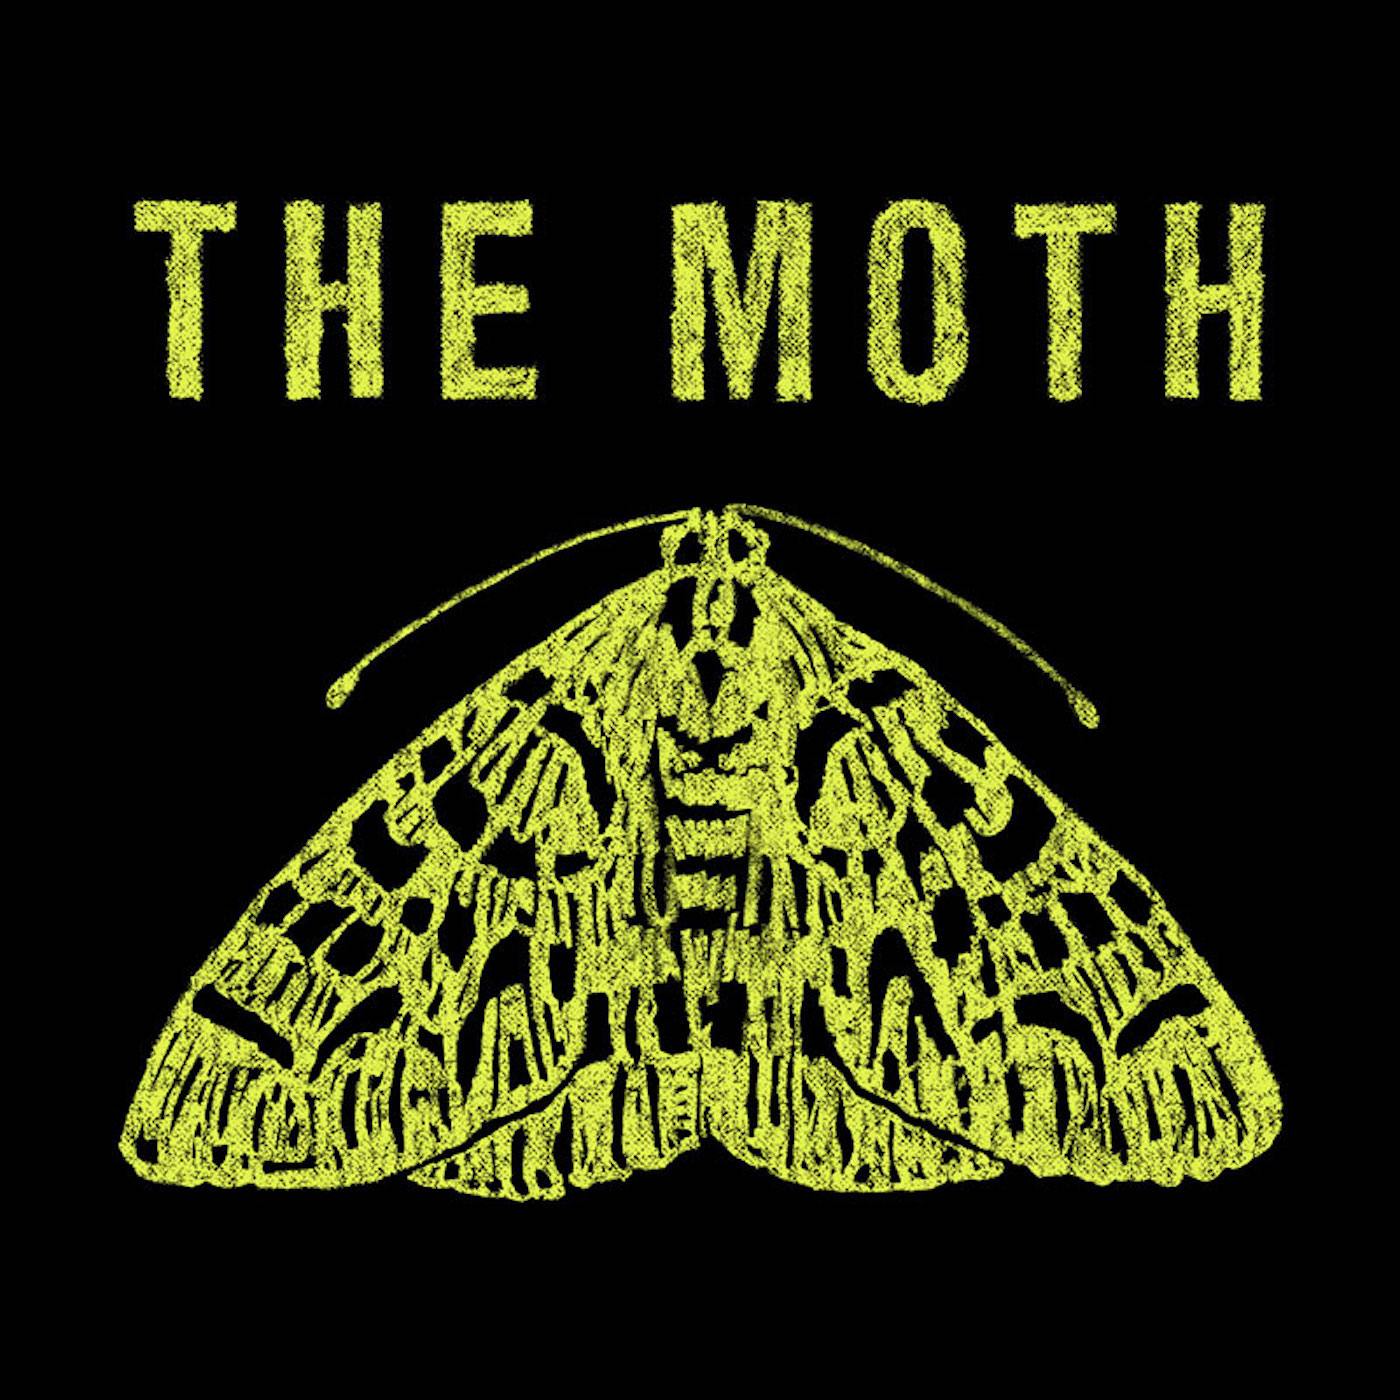 The Moth Radio Hour: War, Barbie Dream House, Coco, and a Nekkid Man